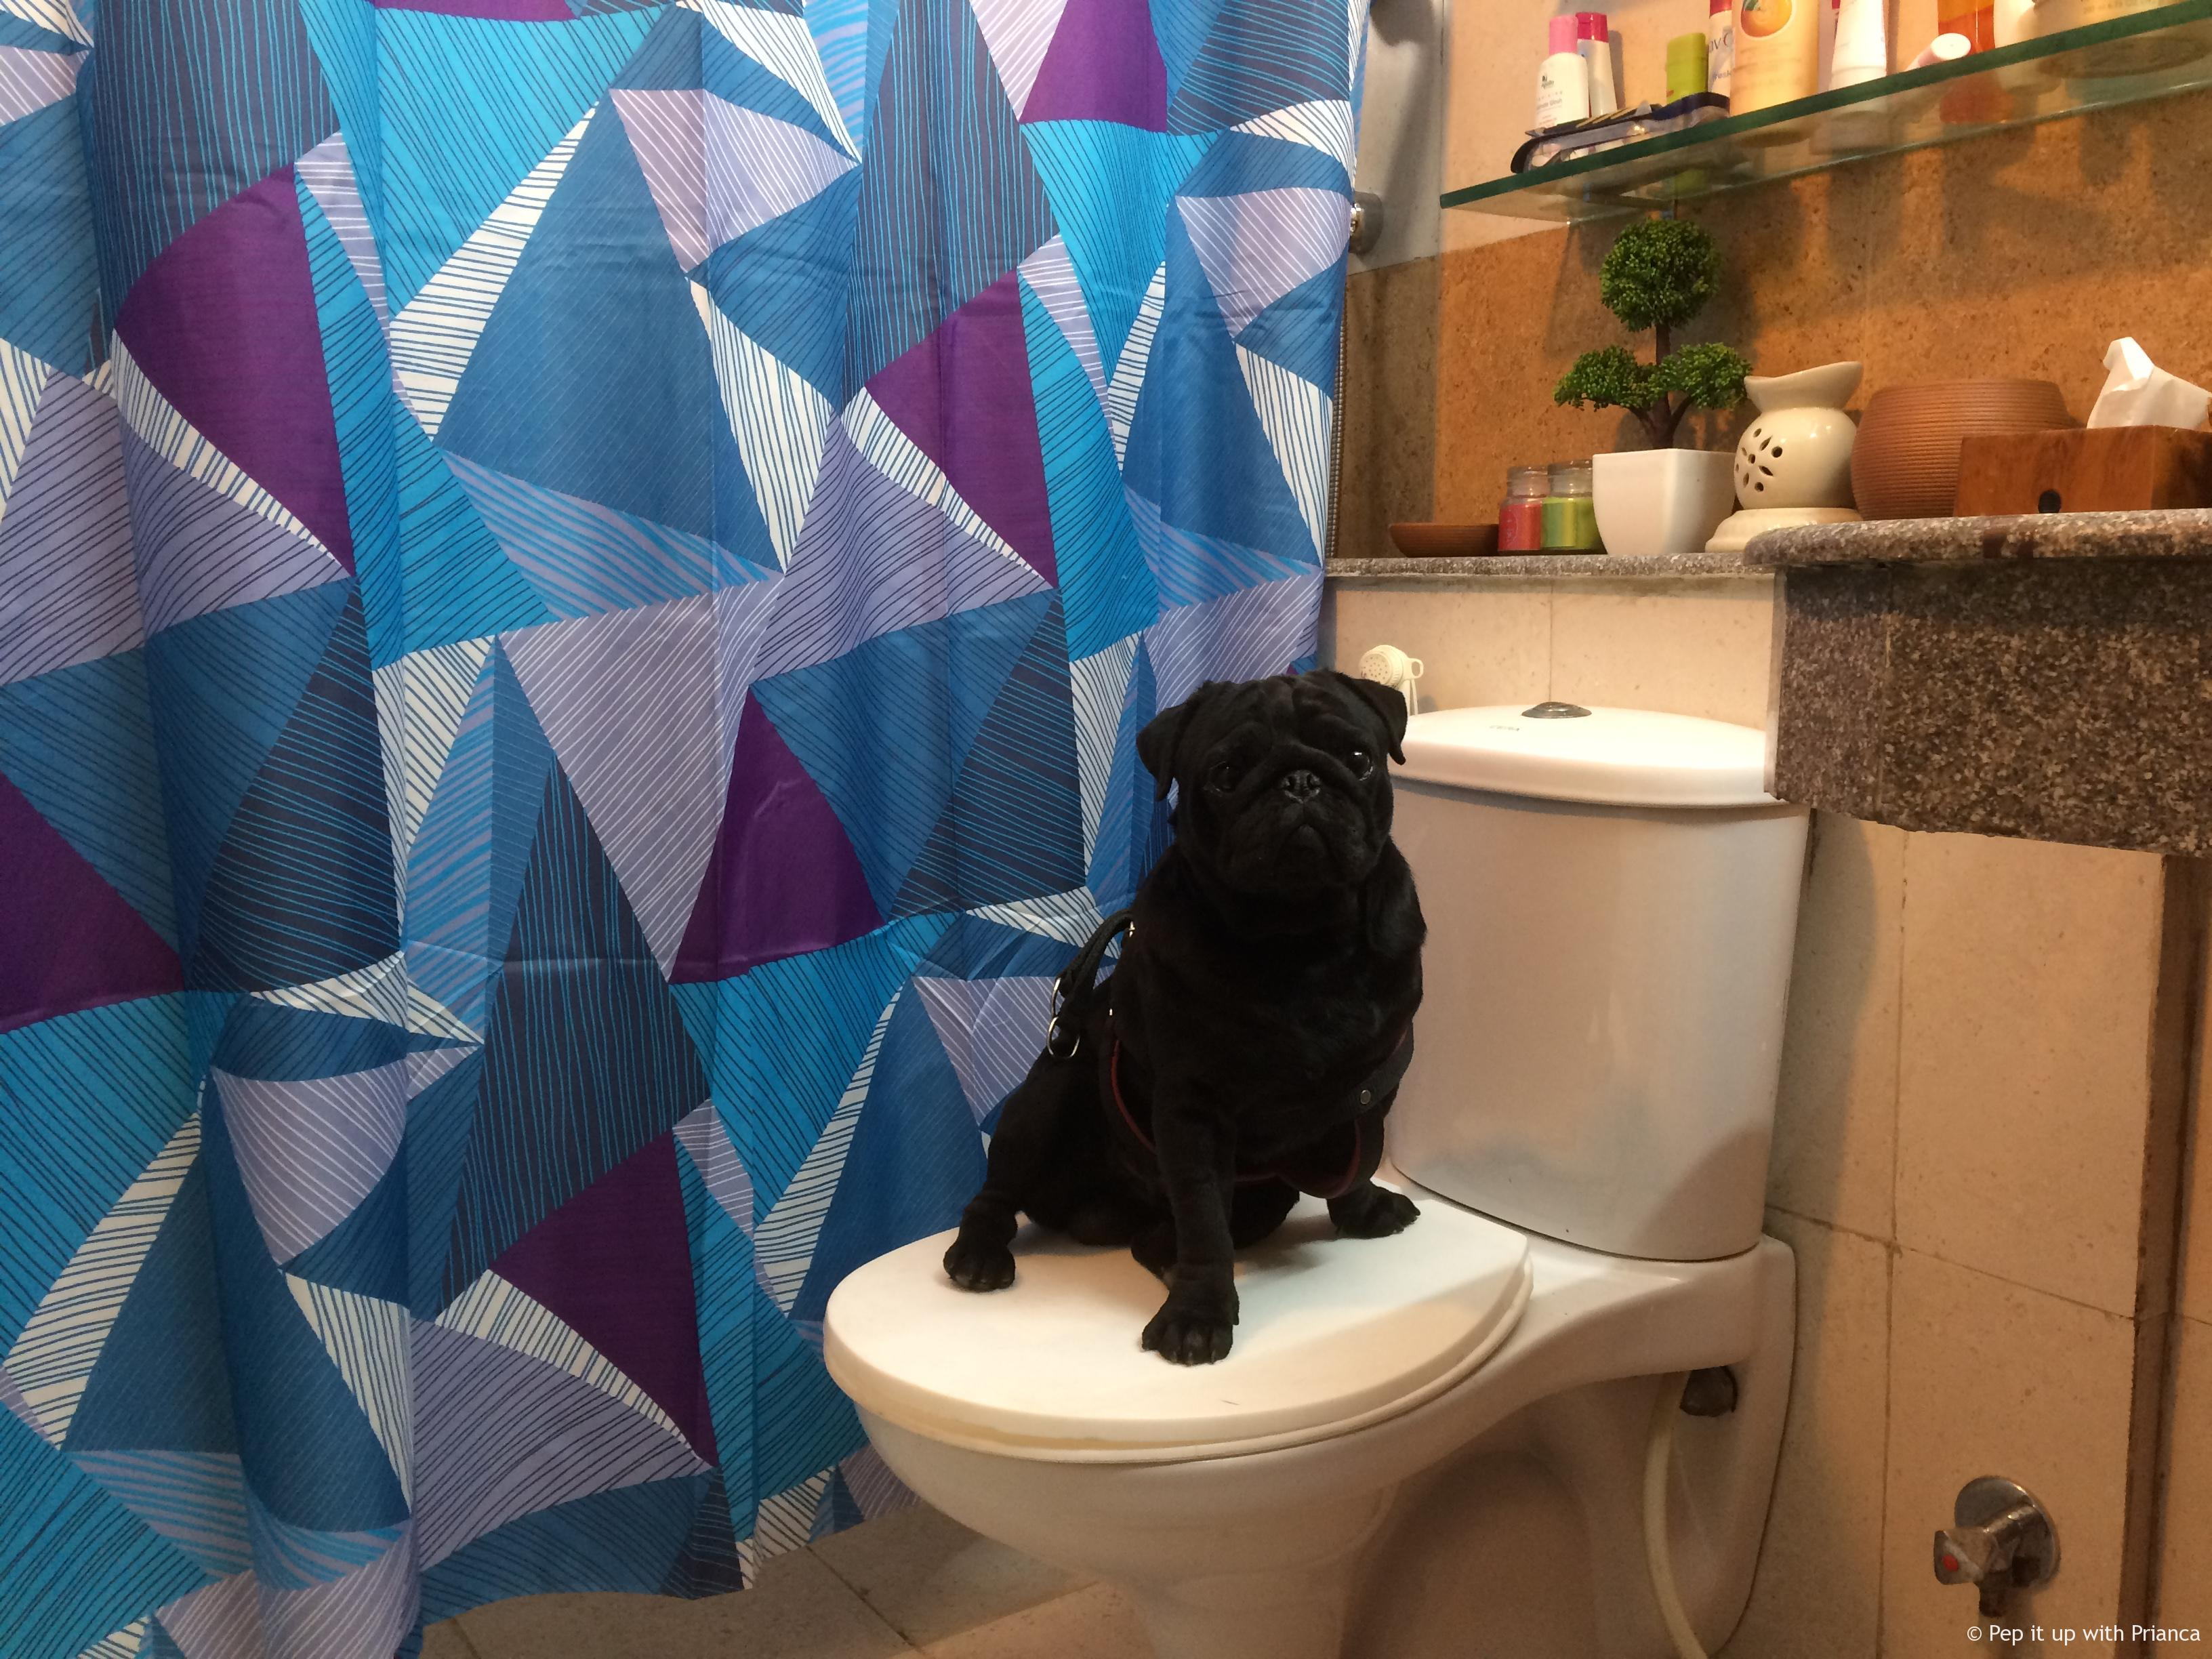 681 - Life's a Pooch - A Day in the Life of a 'Black' Pug!